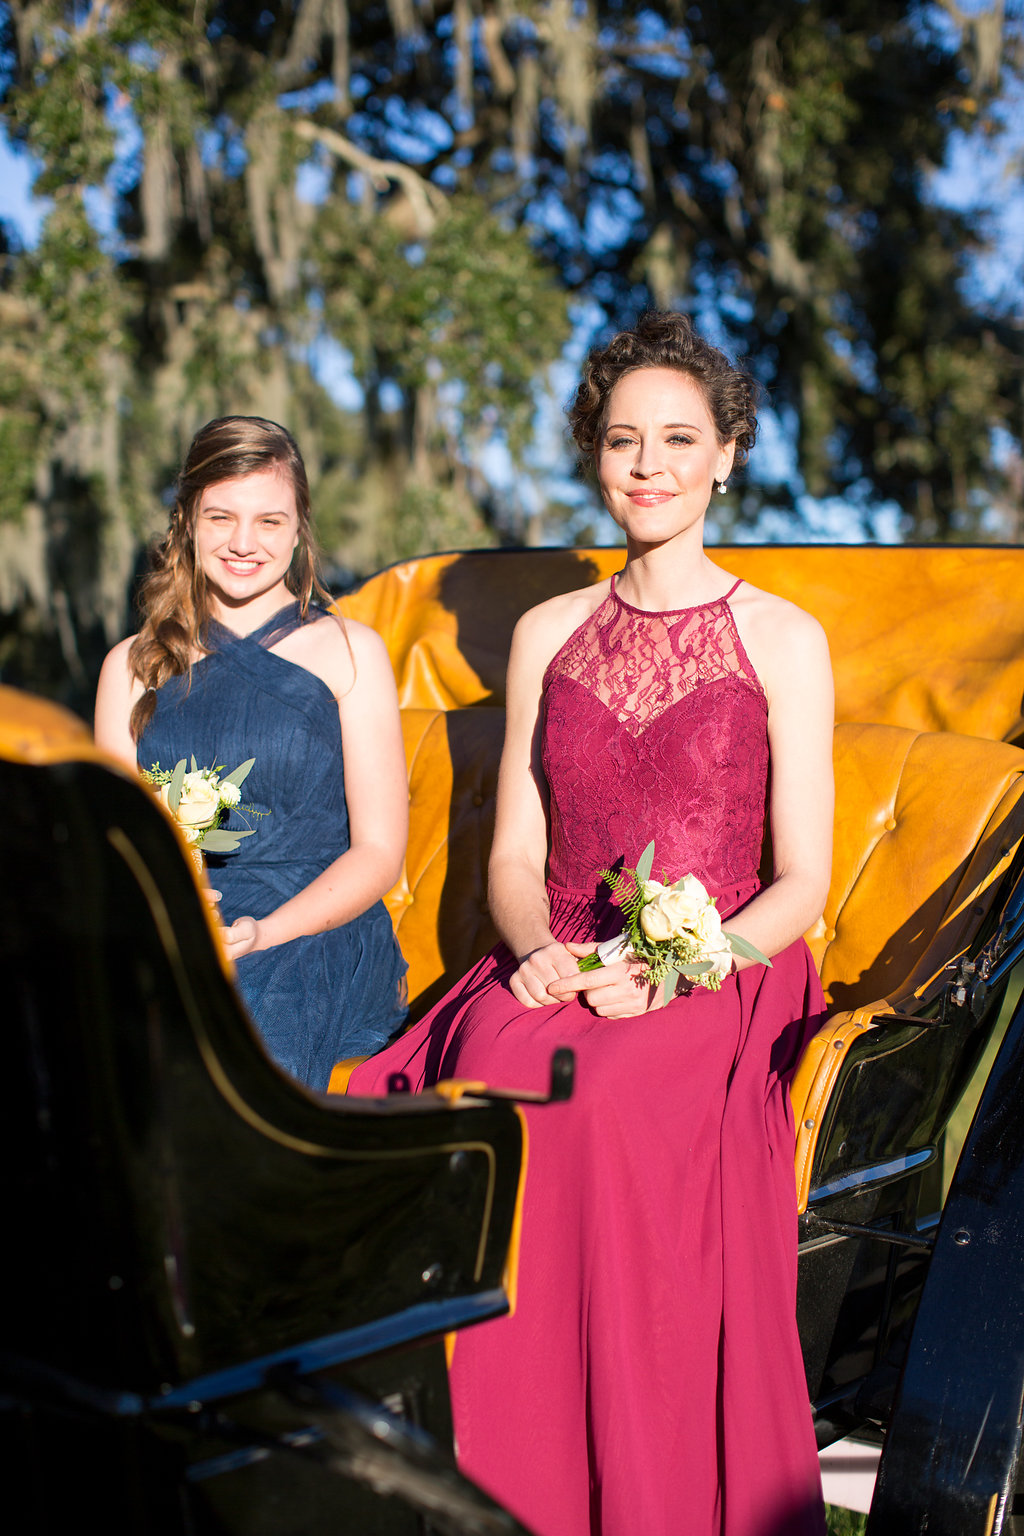 Bridesmaids in Hayley Paige dresses in a black horse and carriage from Old South Carriage Company  //  Sugah Cain Plantation  Bride and her maids at Sugah Cain Plantation in front of white horse and Carriage  //  on A Lowocountry Wedding Magazine & Blog